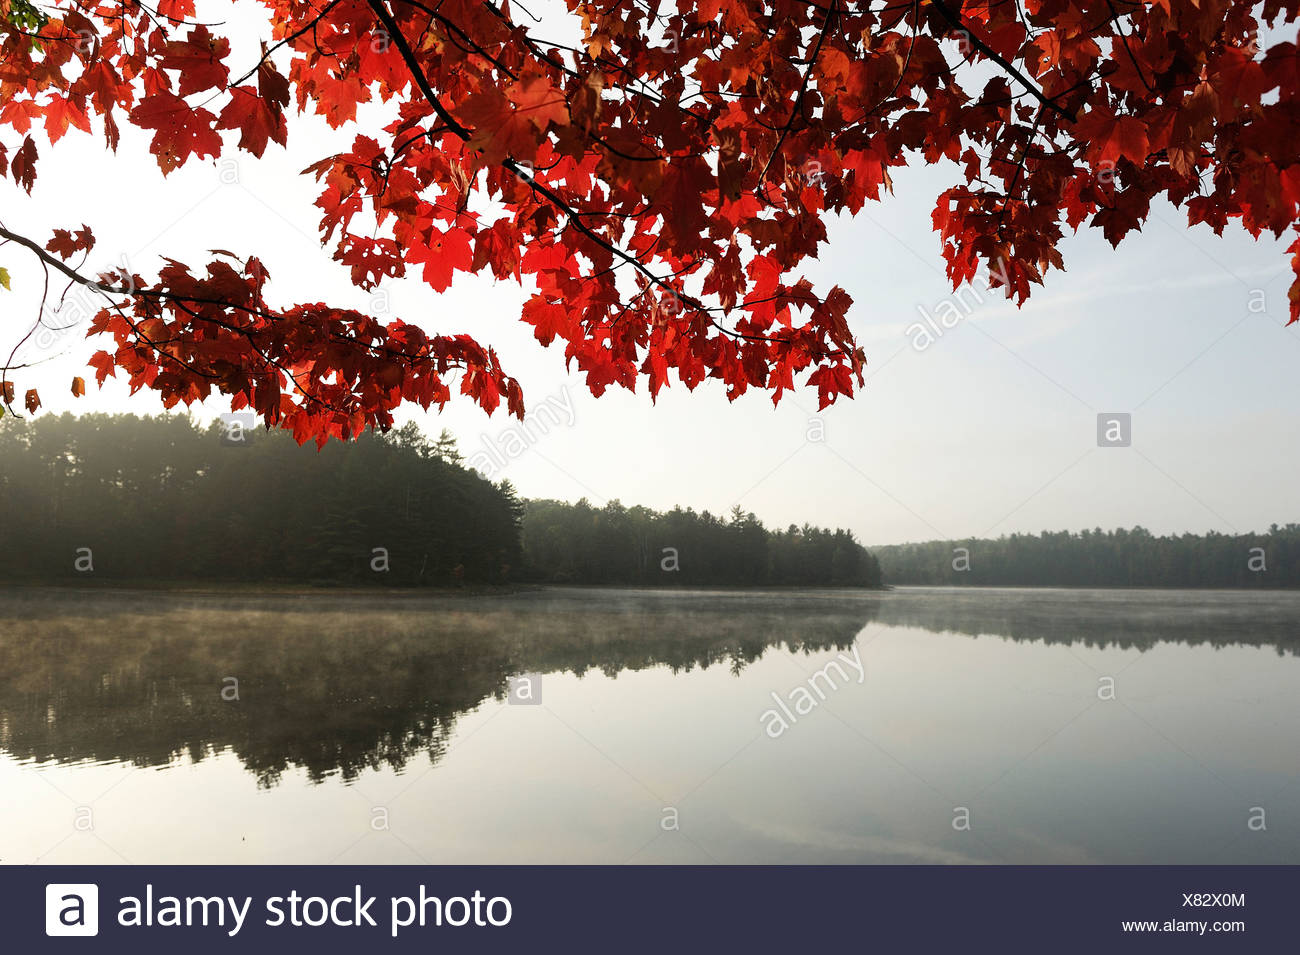 Starrett Lake Northern Highland American Legion State Forest Wisconsin USA America United States of America lake forest trees - Stock Image